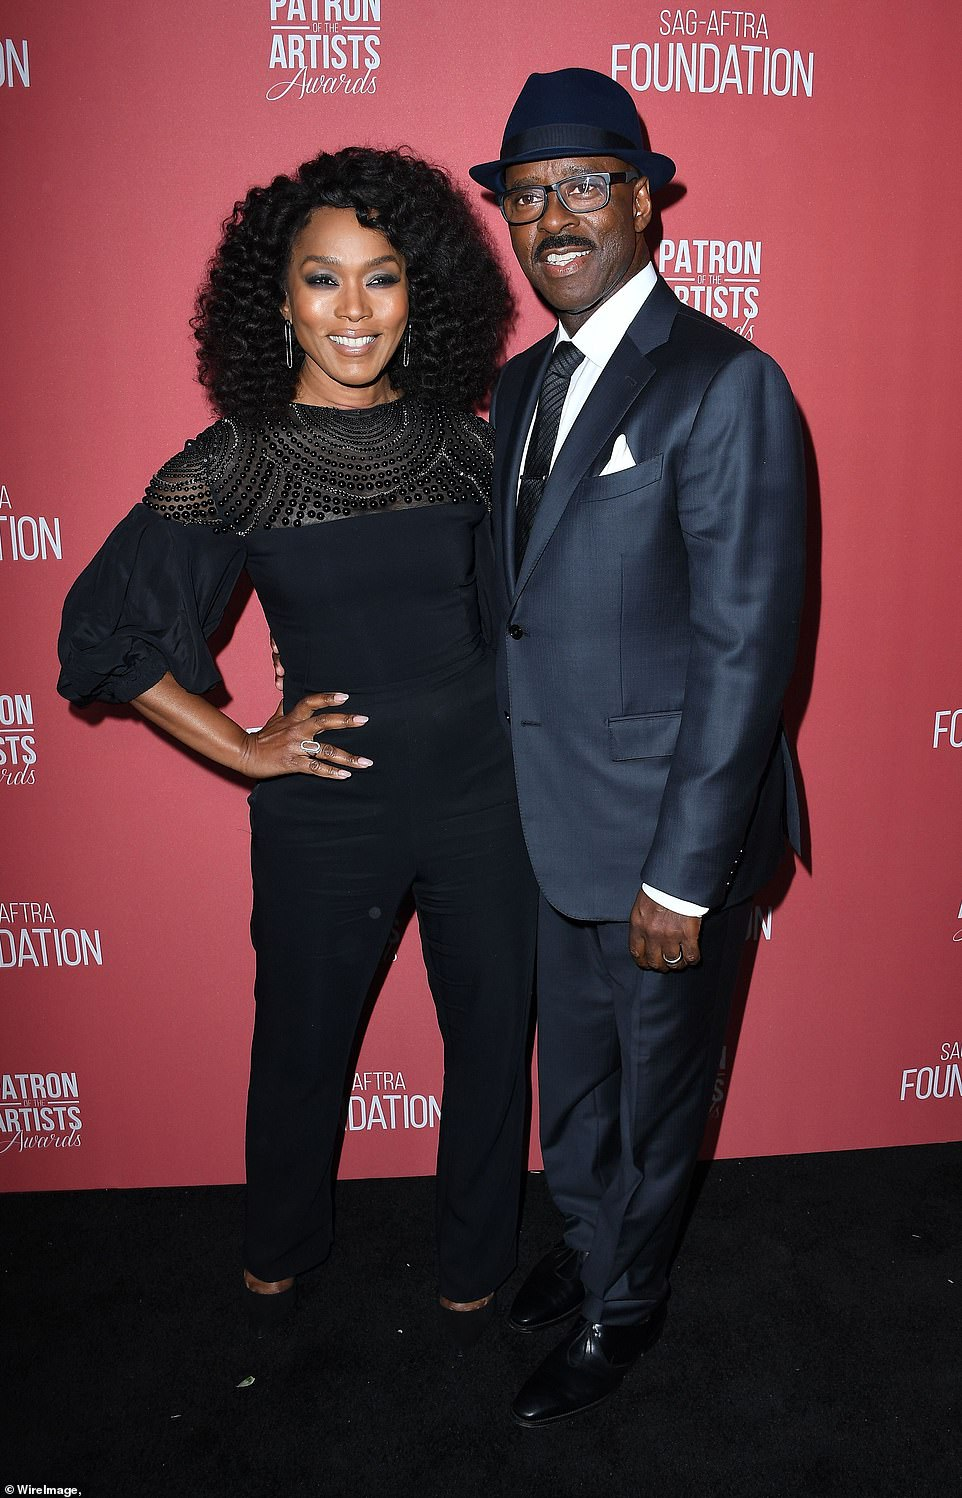 VIPs: Also there were Angela Bassett and her husband Courtney B. Vance who is the current SAG-AFTRA Foundation president